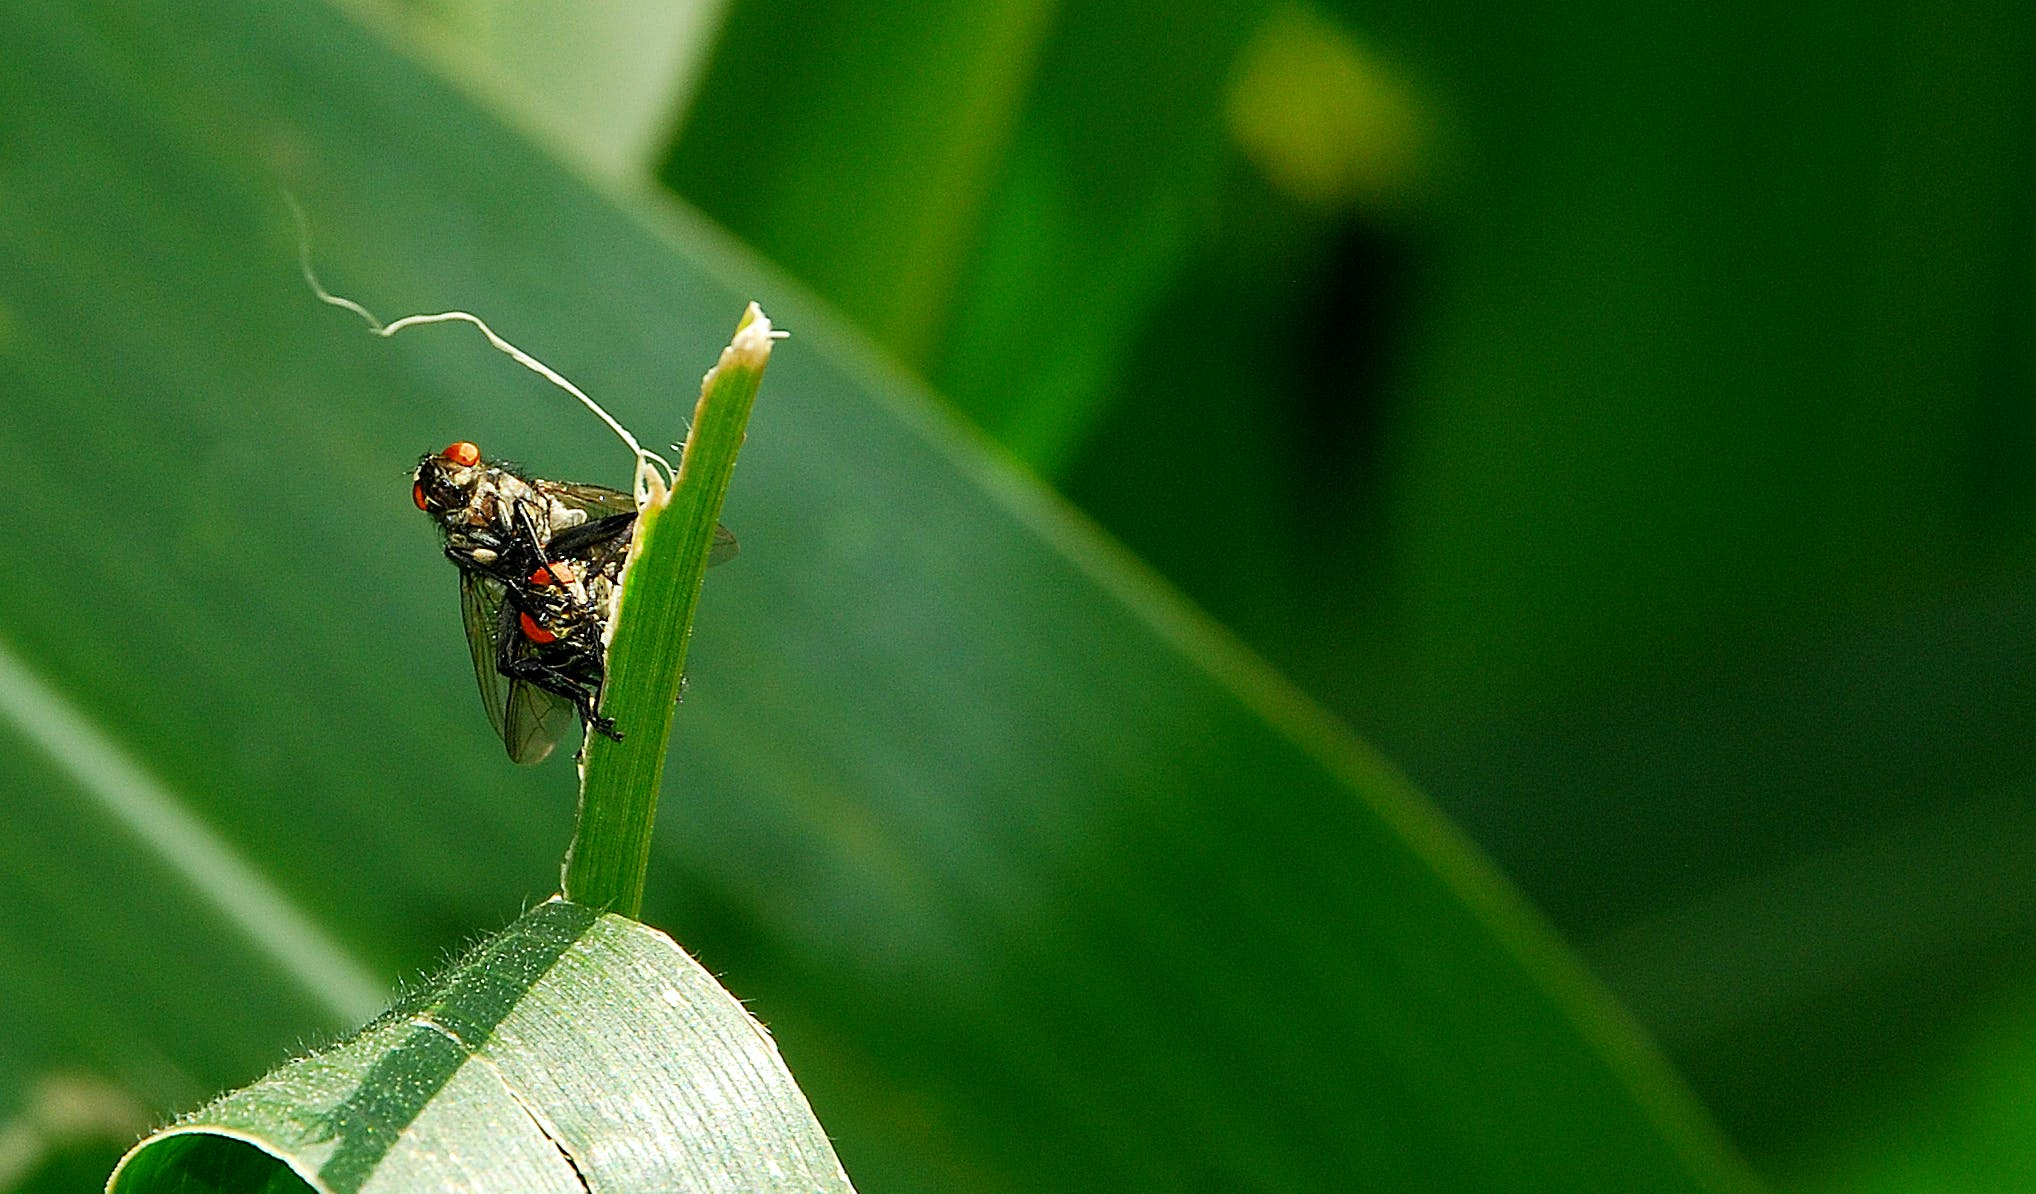 Two Black Fly Mating on Green Leaf